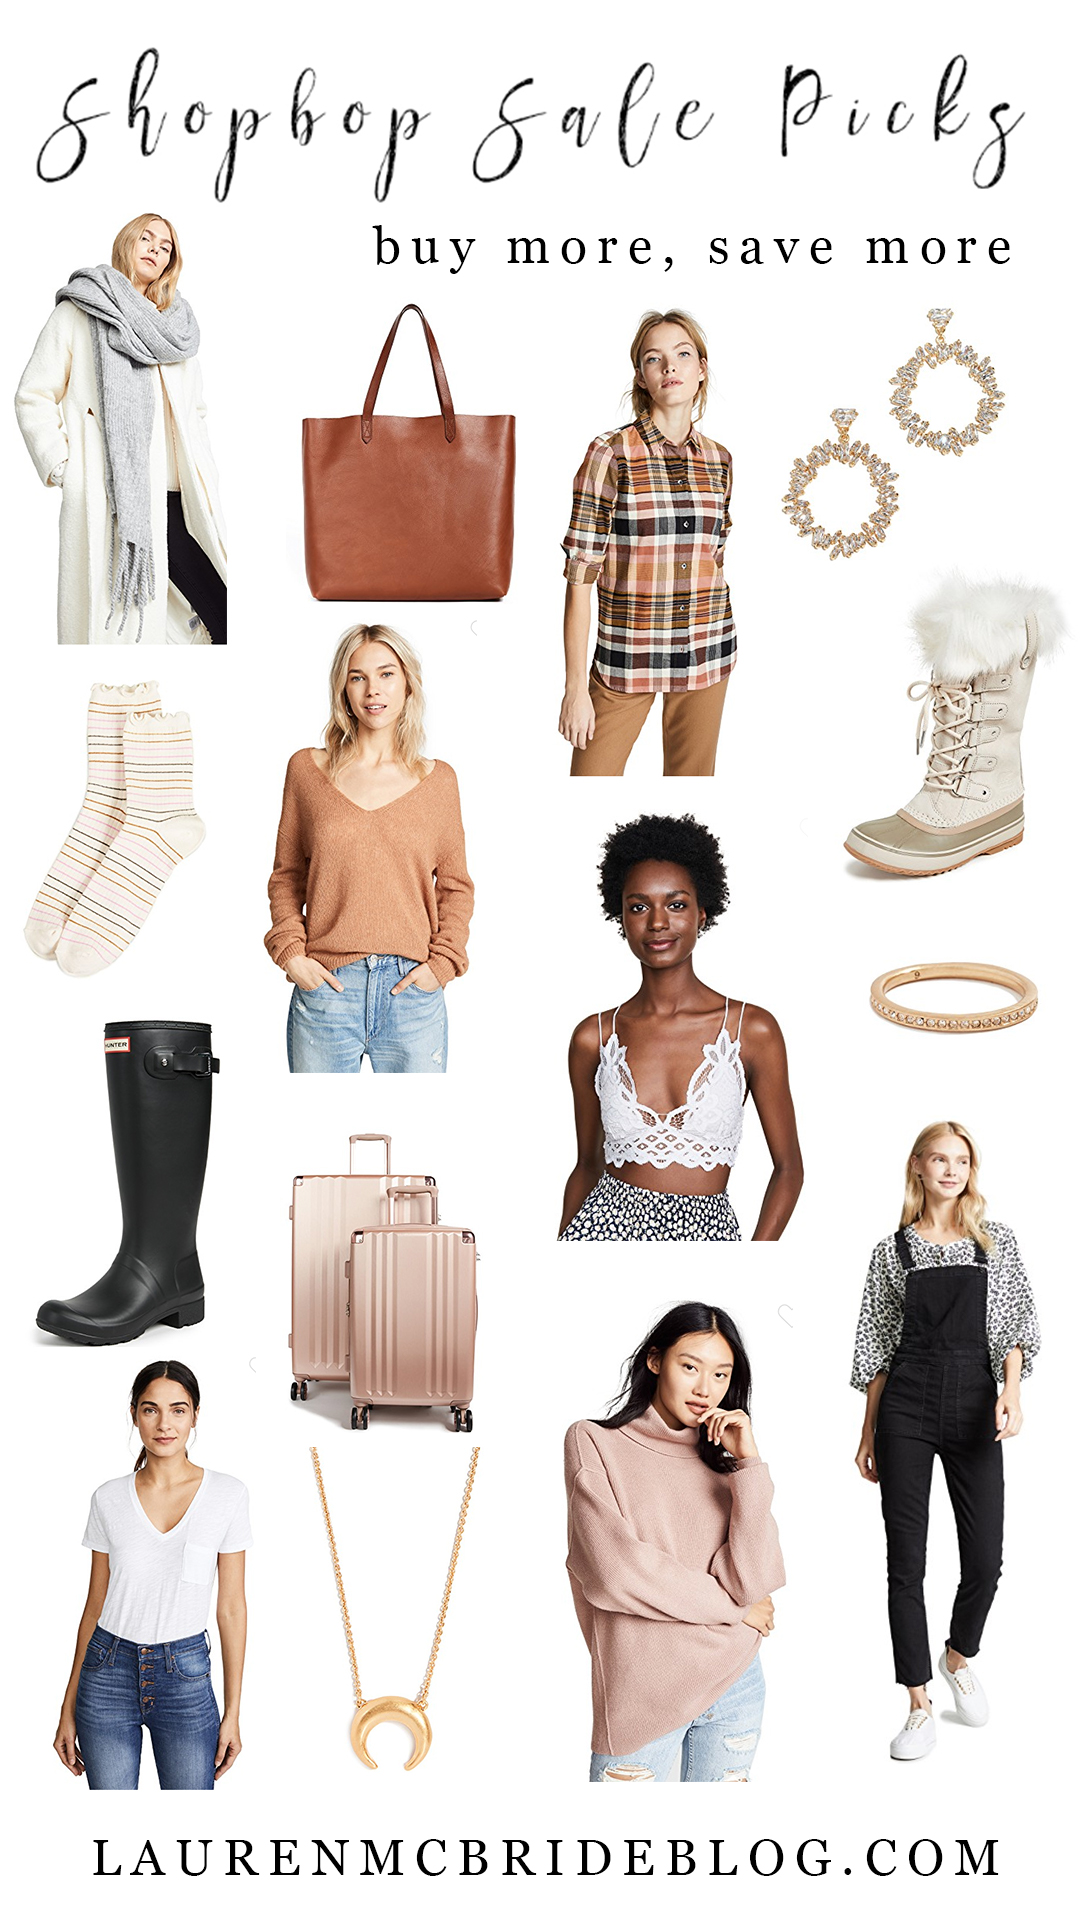 Connecticut life and style blogger Lauren McBride shares her picks for the ShopBop Buy More, Save More sale.